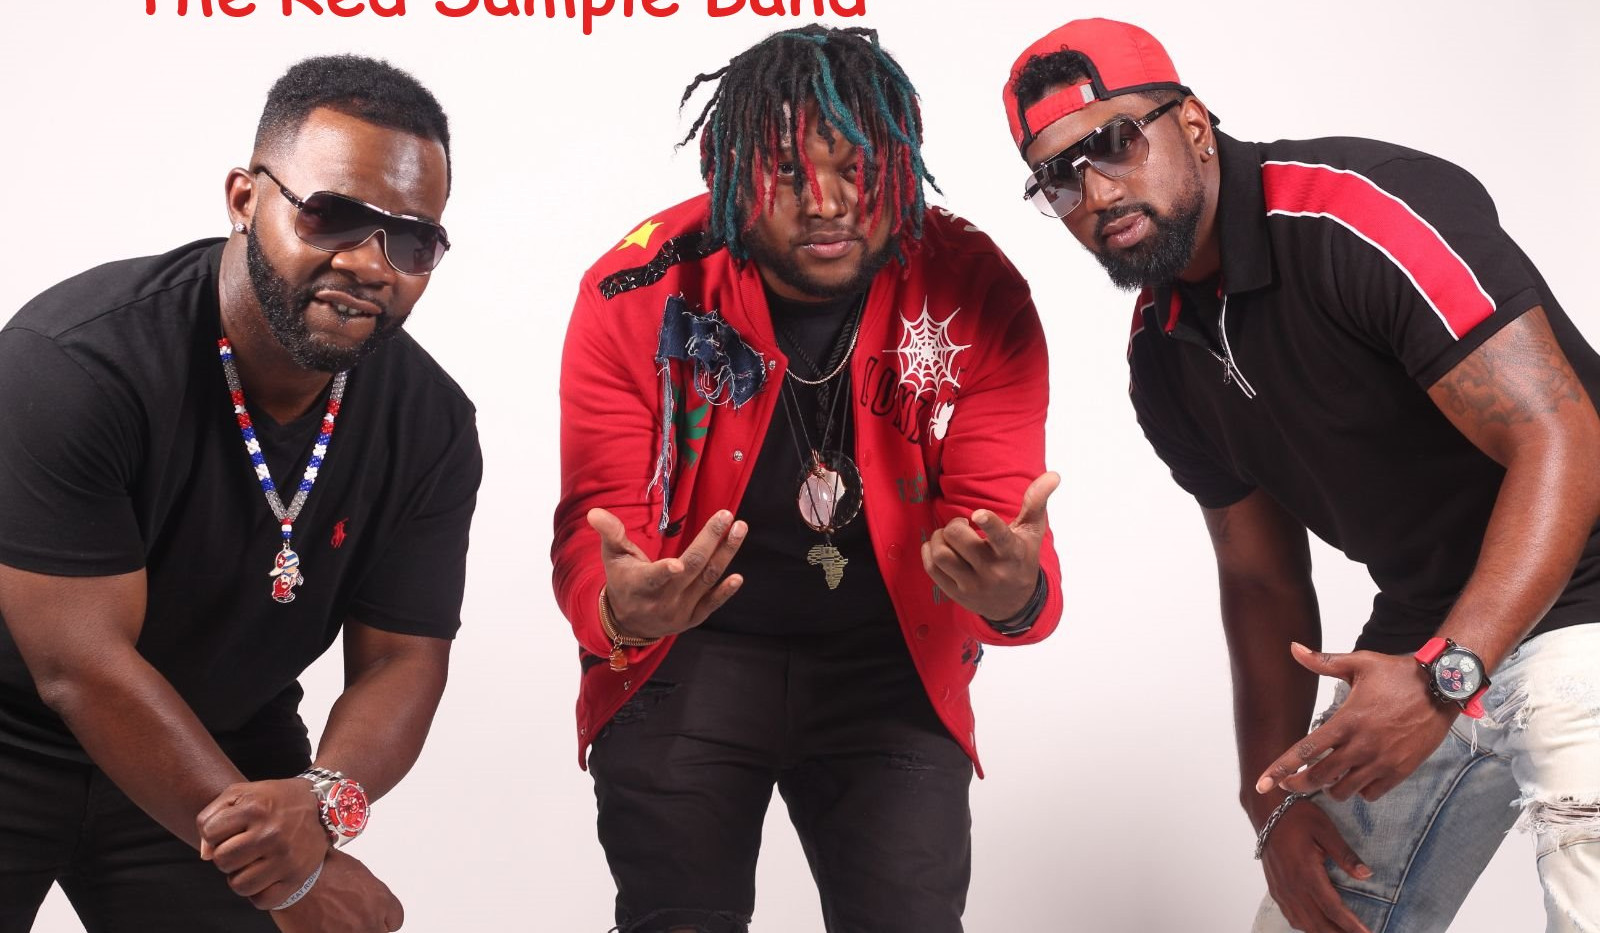 THE RED SAMPLE BAND